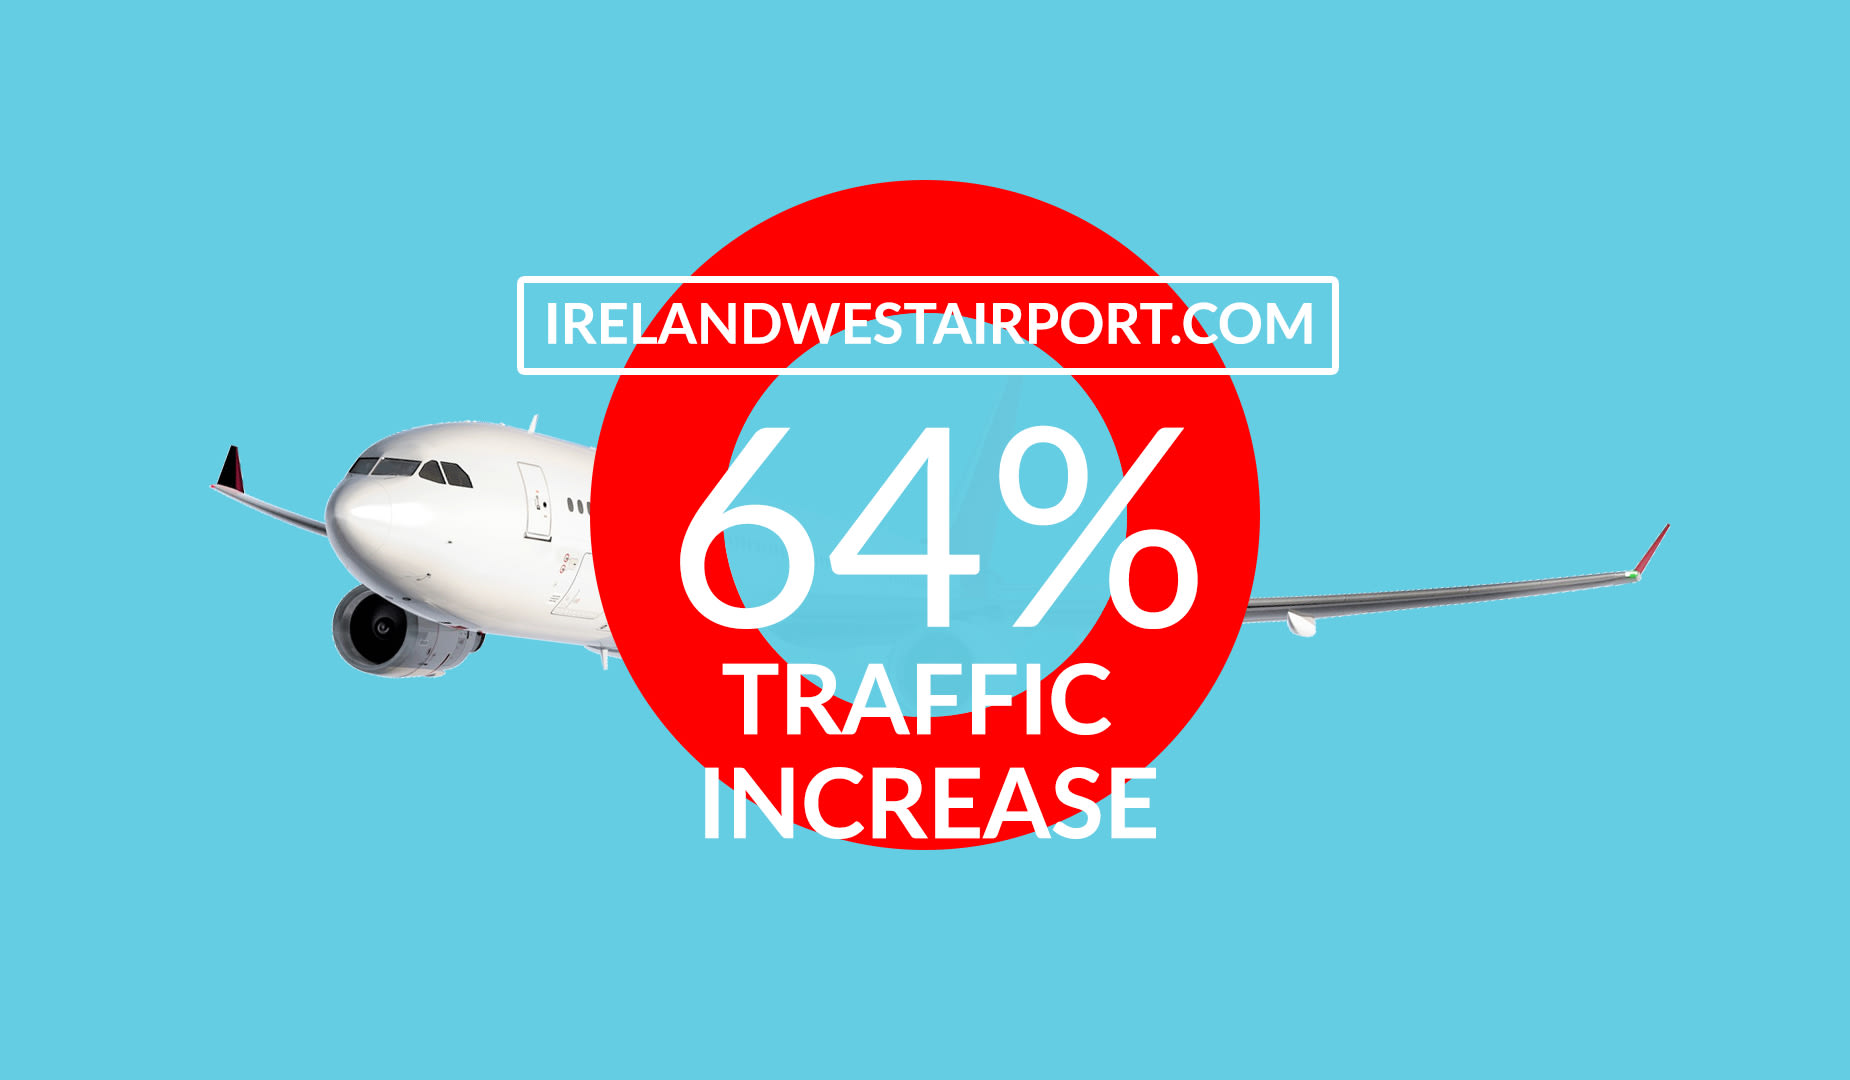 airport seo ryco marketing company dublin